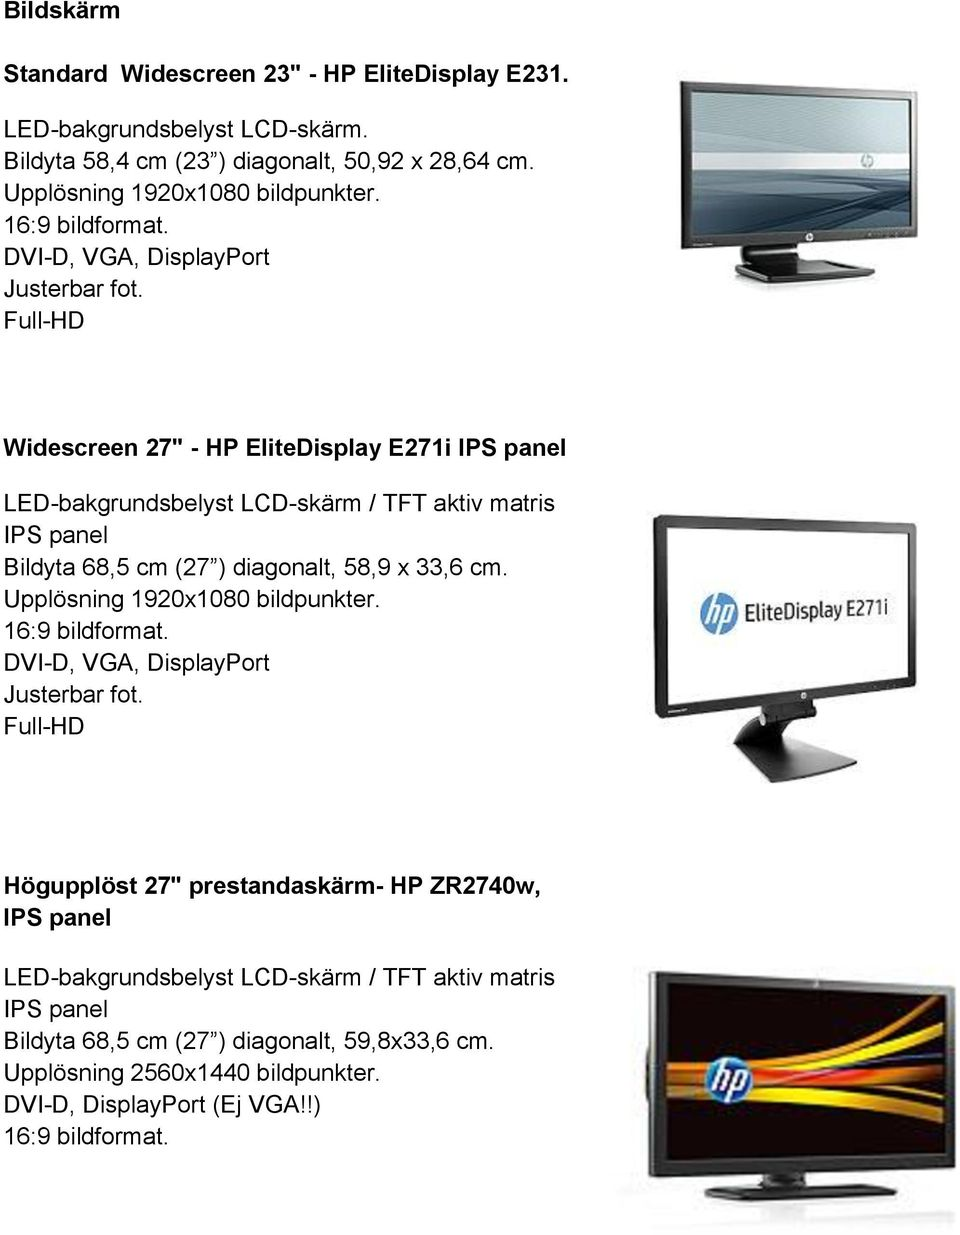 "Full-HD Widescreen 27"" - HP EliteDisplay E271i IPS panel LED-bakgrundsbelyst LCD-skärm / TFT aktiv matris IPS panel Bildyta 68,5 cm (27 ) diagonalt, 58,9 x 33,6 cm."